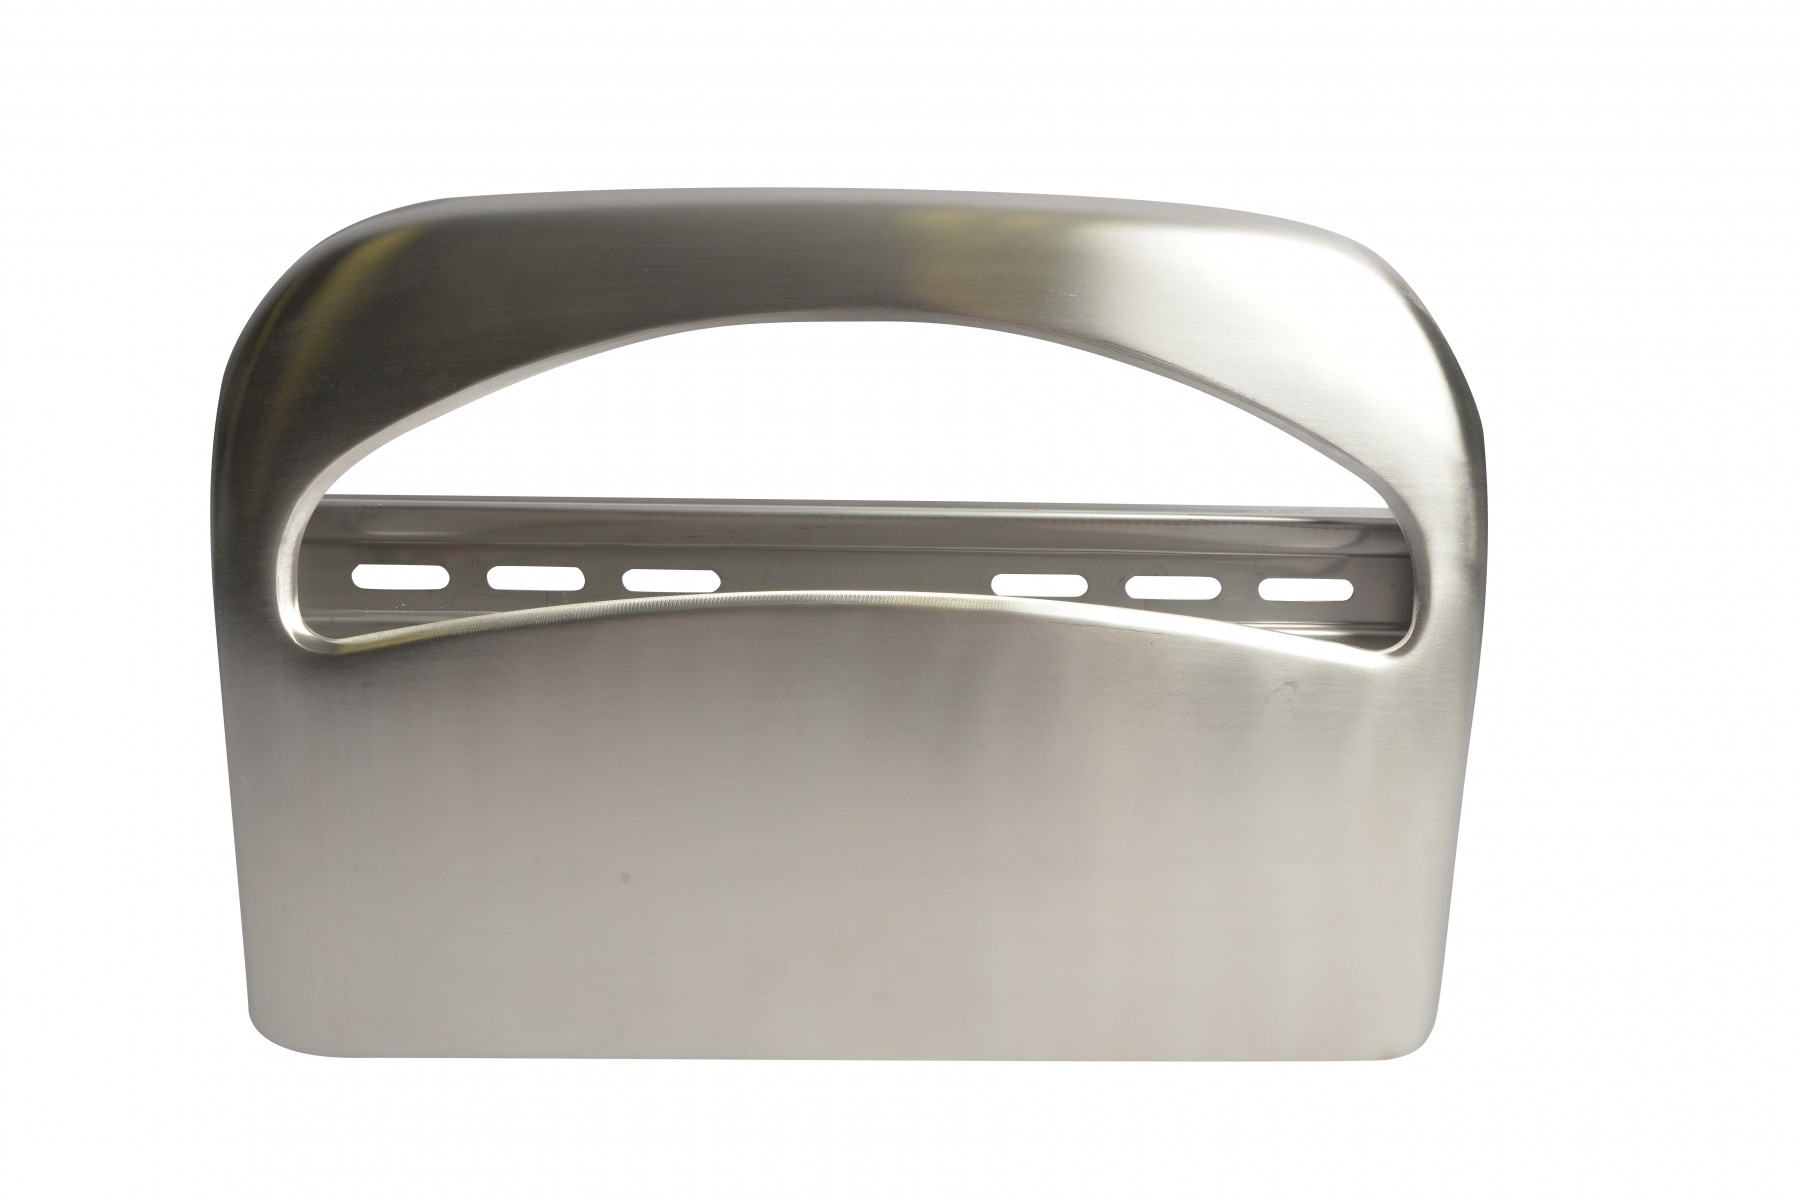 Outstanding 2511 Stainless Steel 1 2 Fold Toilet Seat Cover Dispenser Machost Co Dining Chair Design Ideas Machostcouk